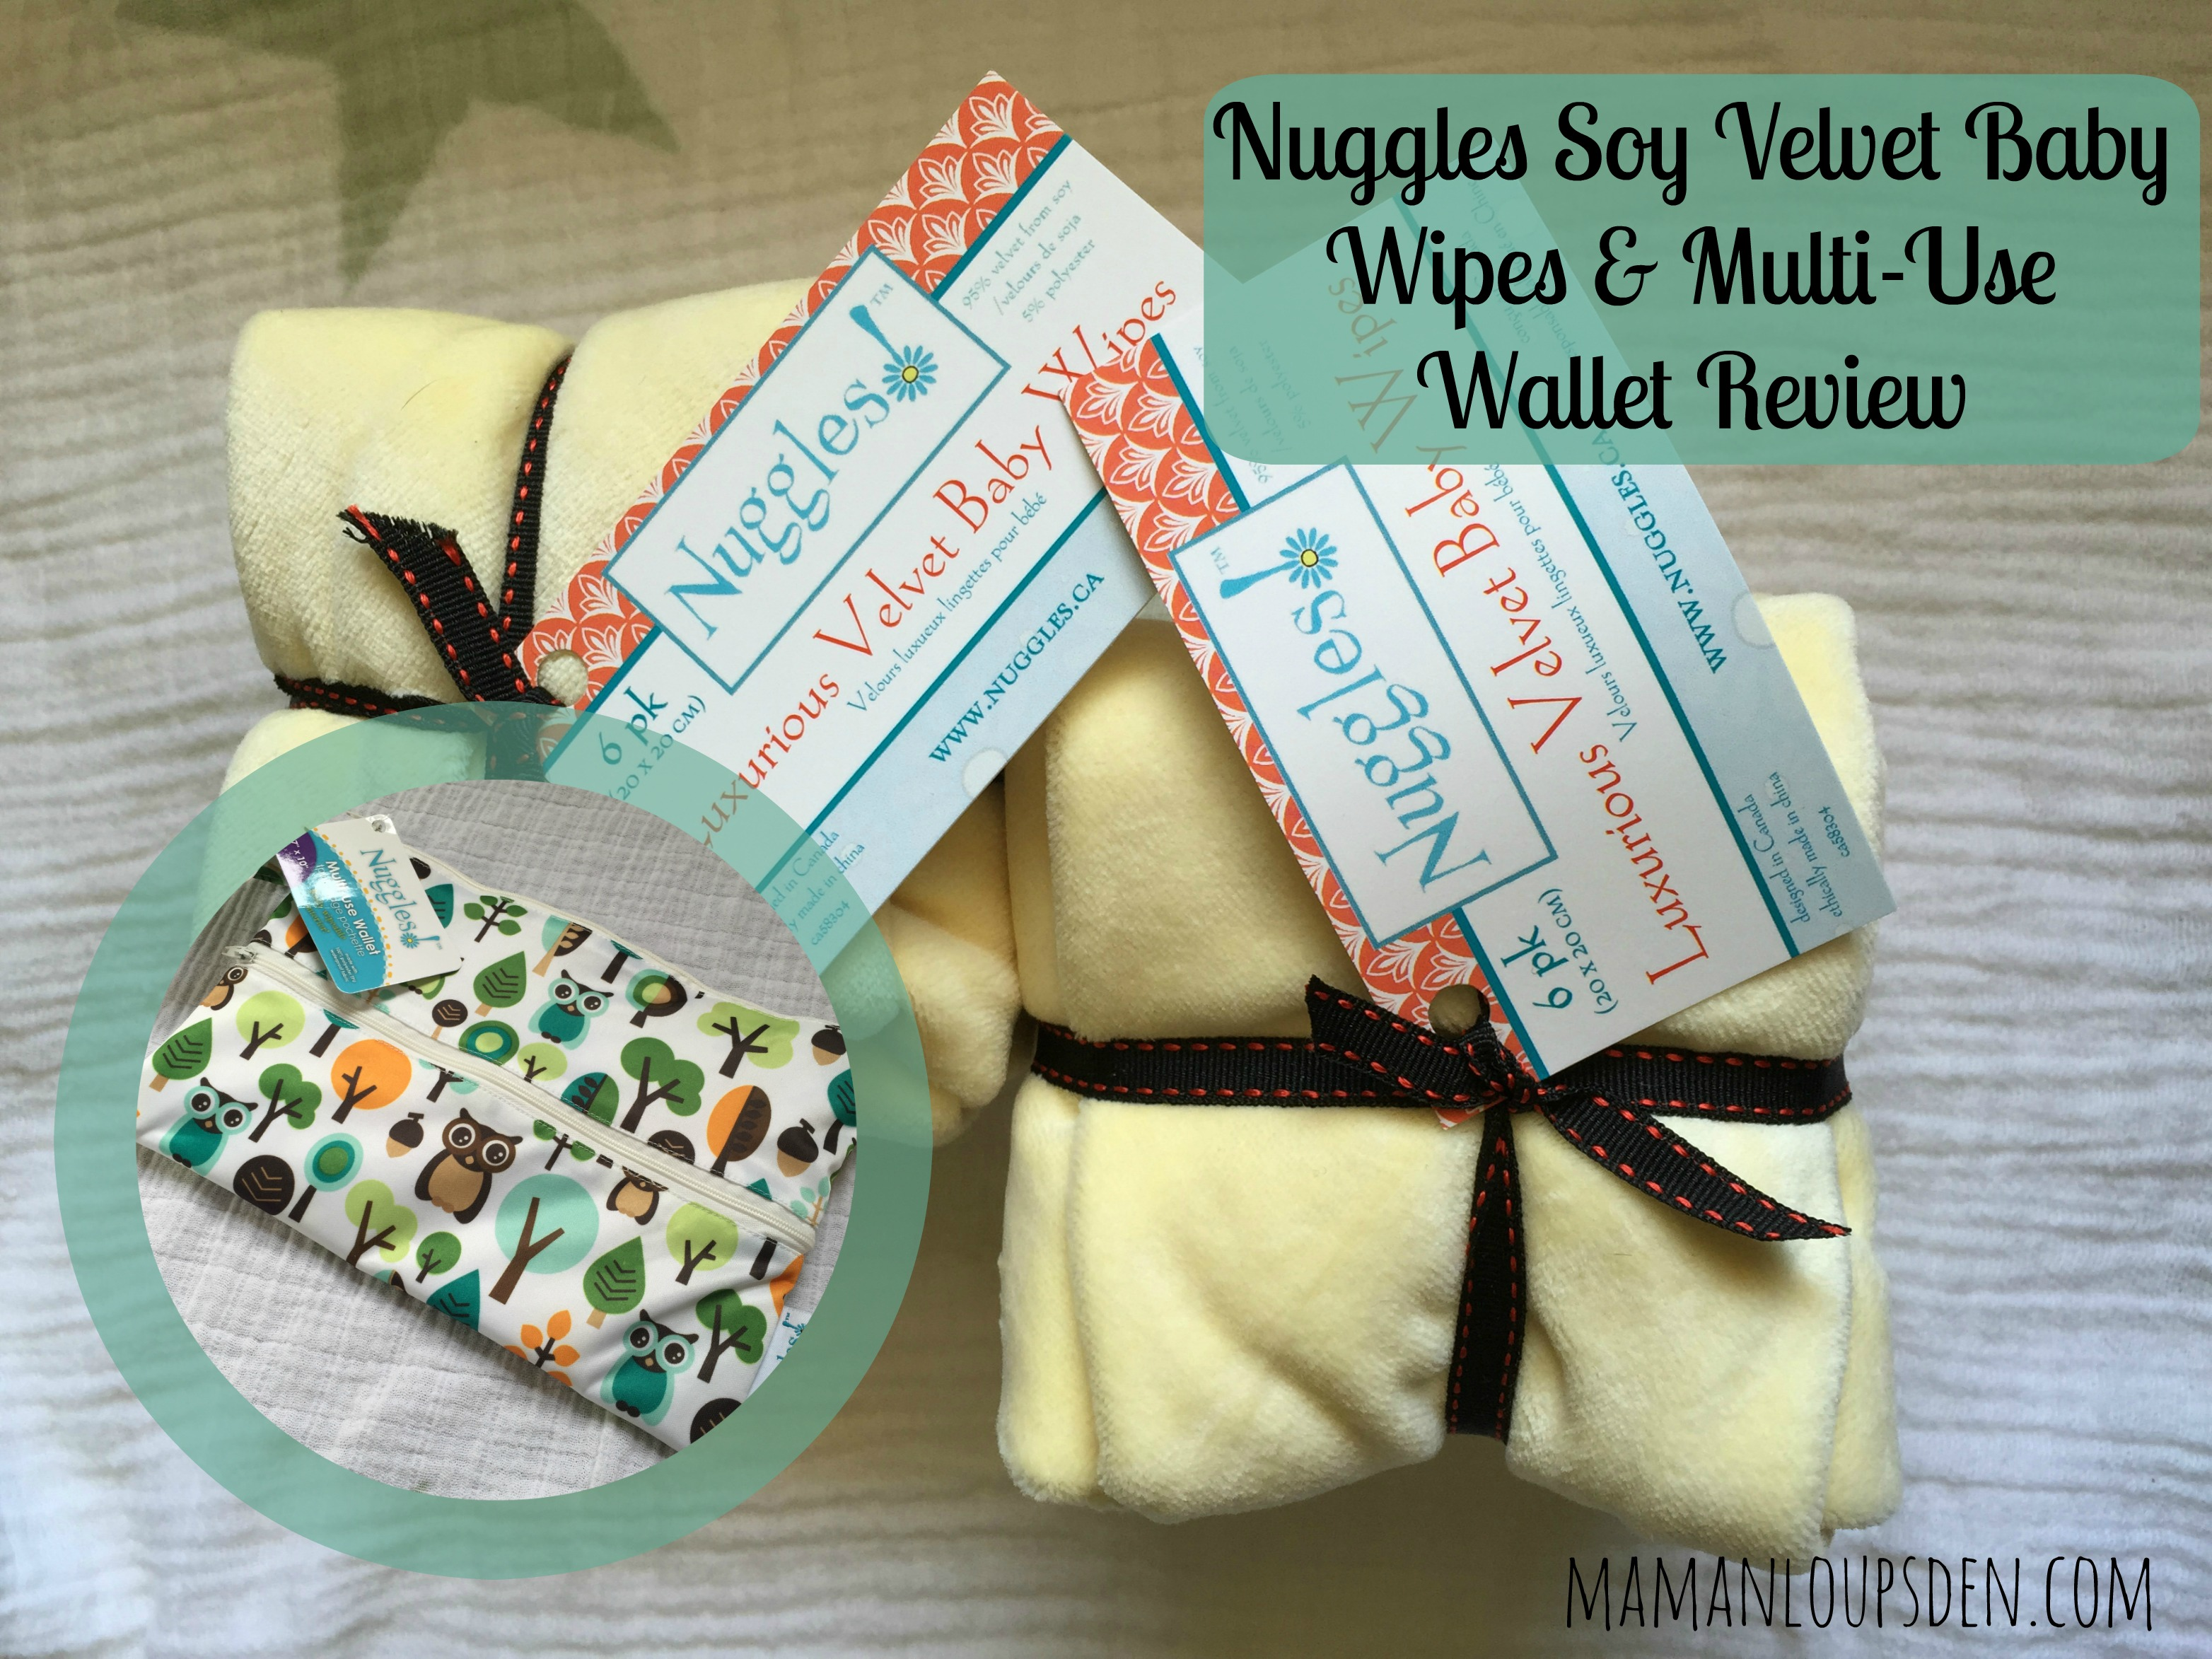 Nuggles Soy Velvet Baby Wipes and Multi-Use Wallet Review